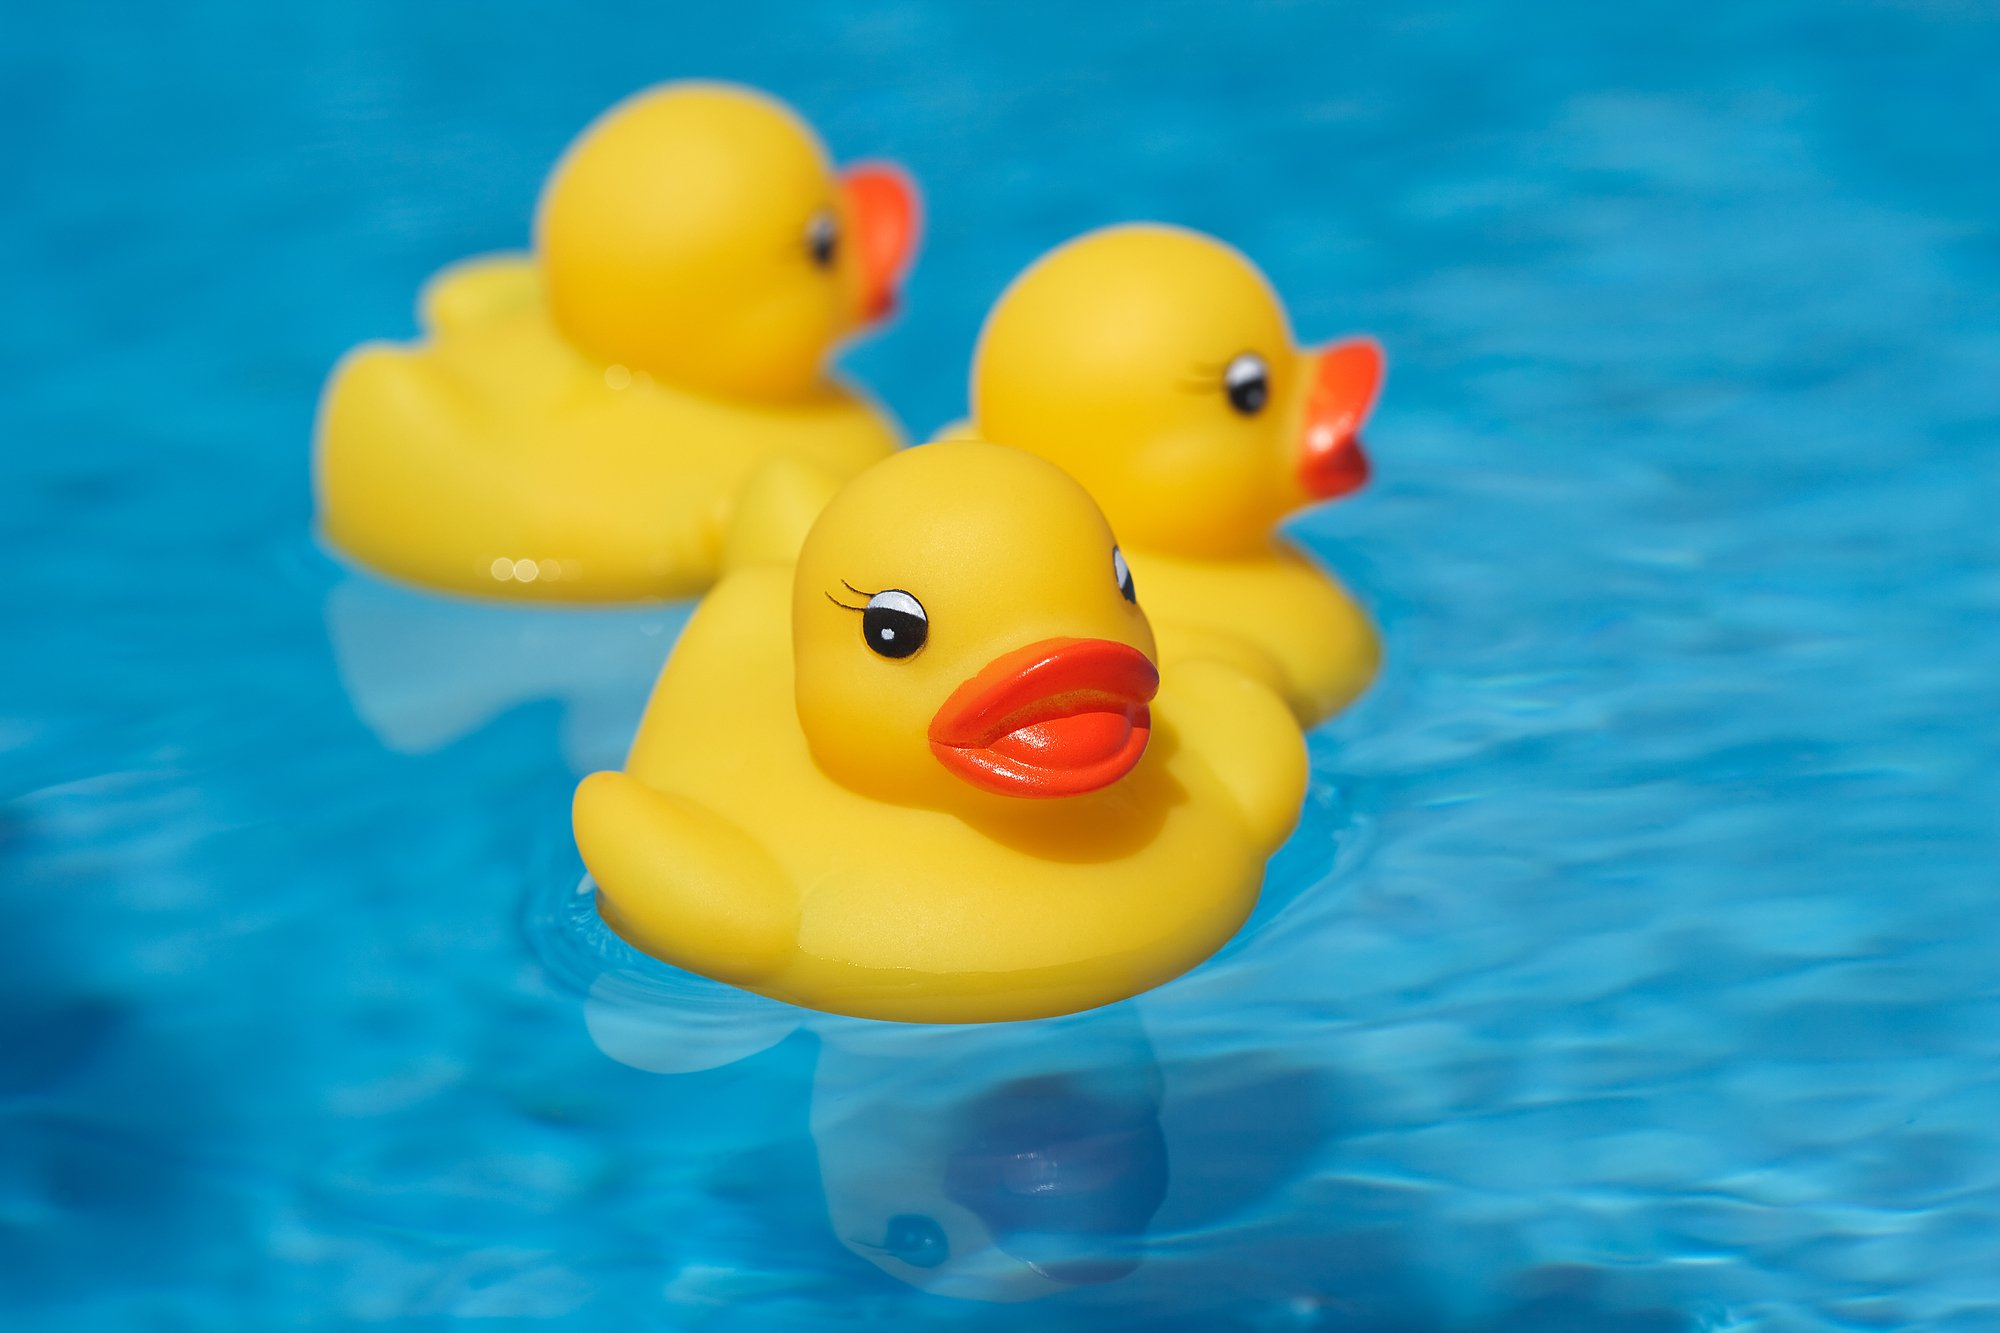 Rubber Ducky may not be the friend we thought he was ...